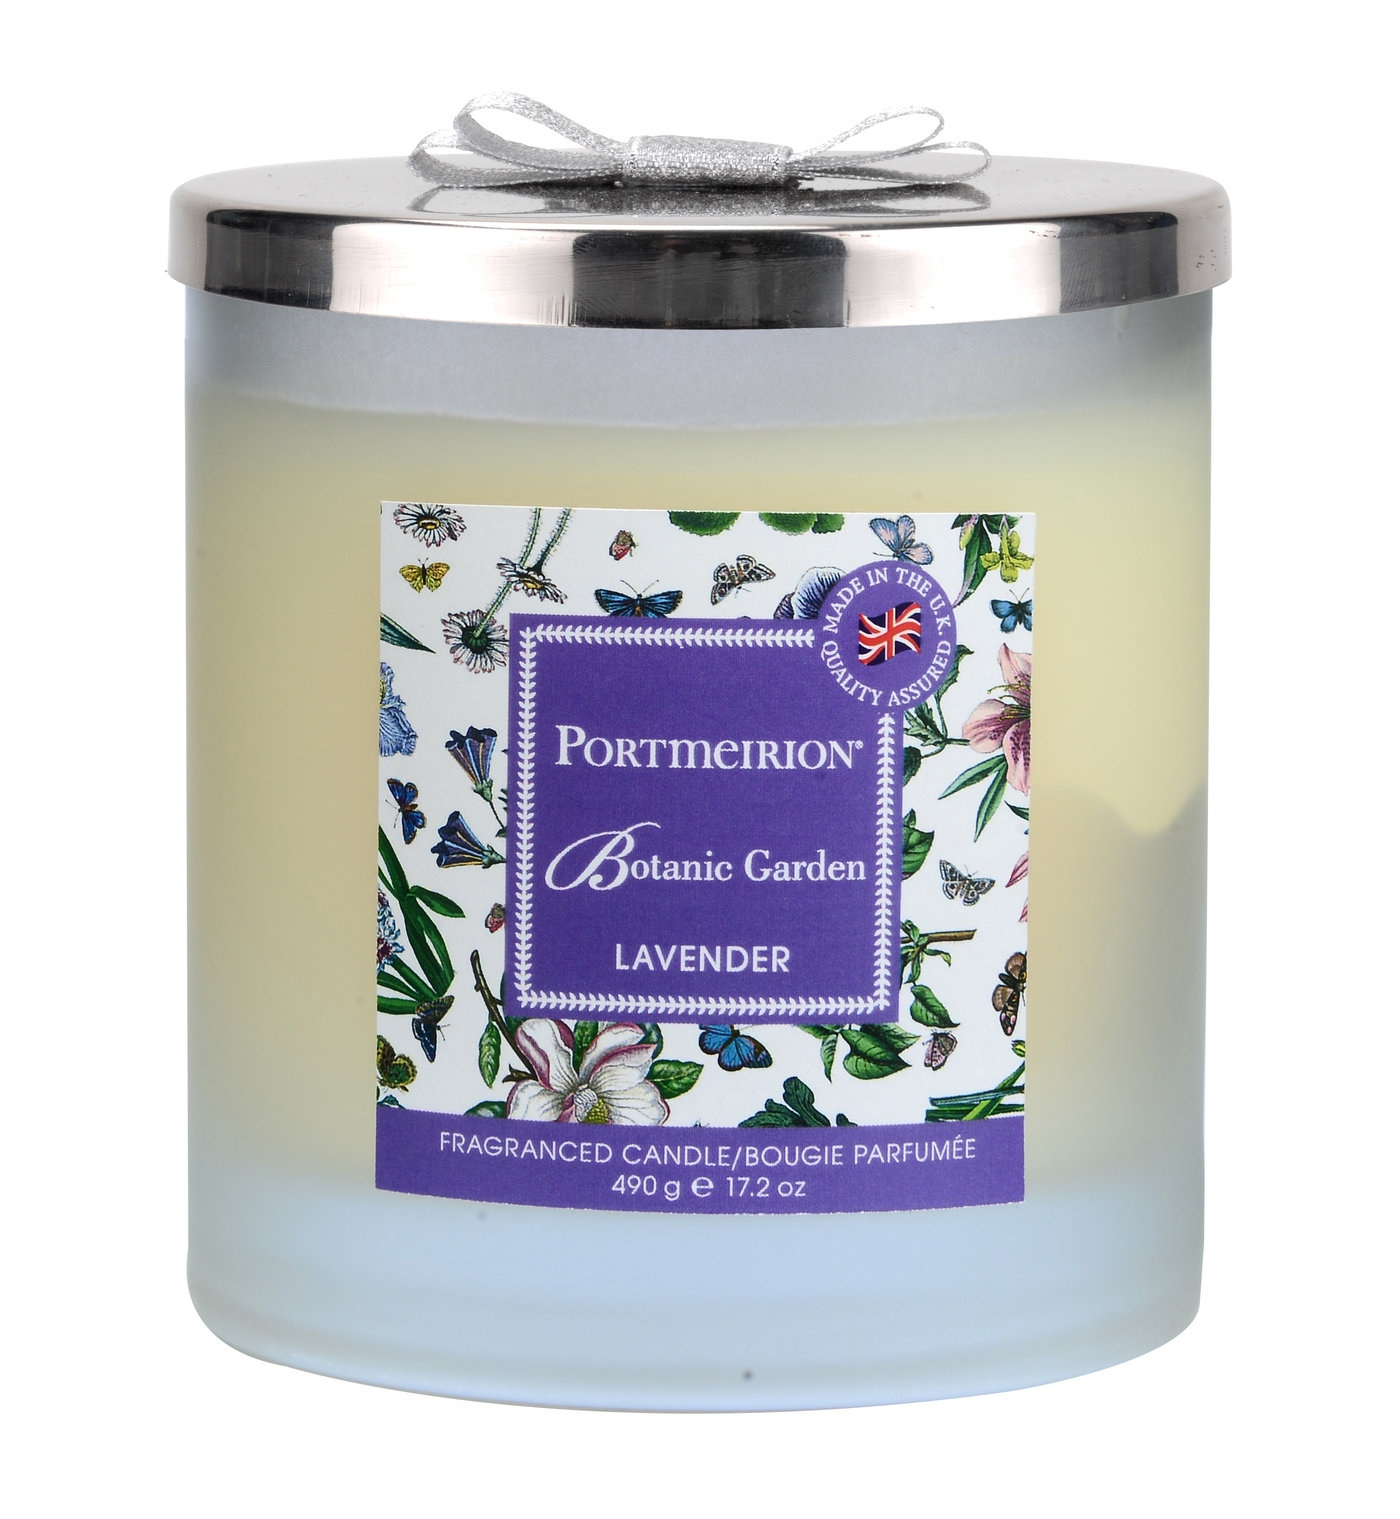 Portmeirion Botanic Garden Home Fragrance